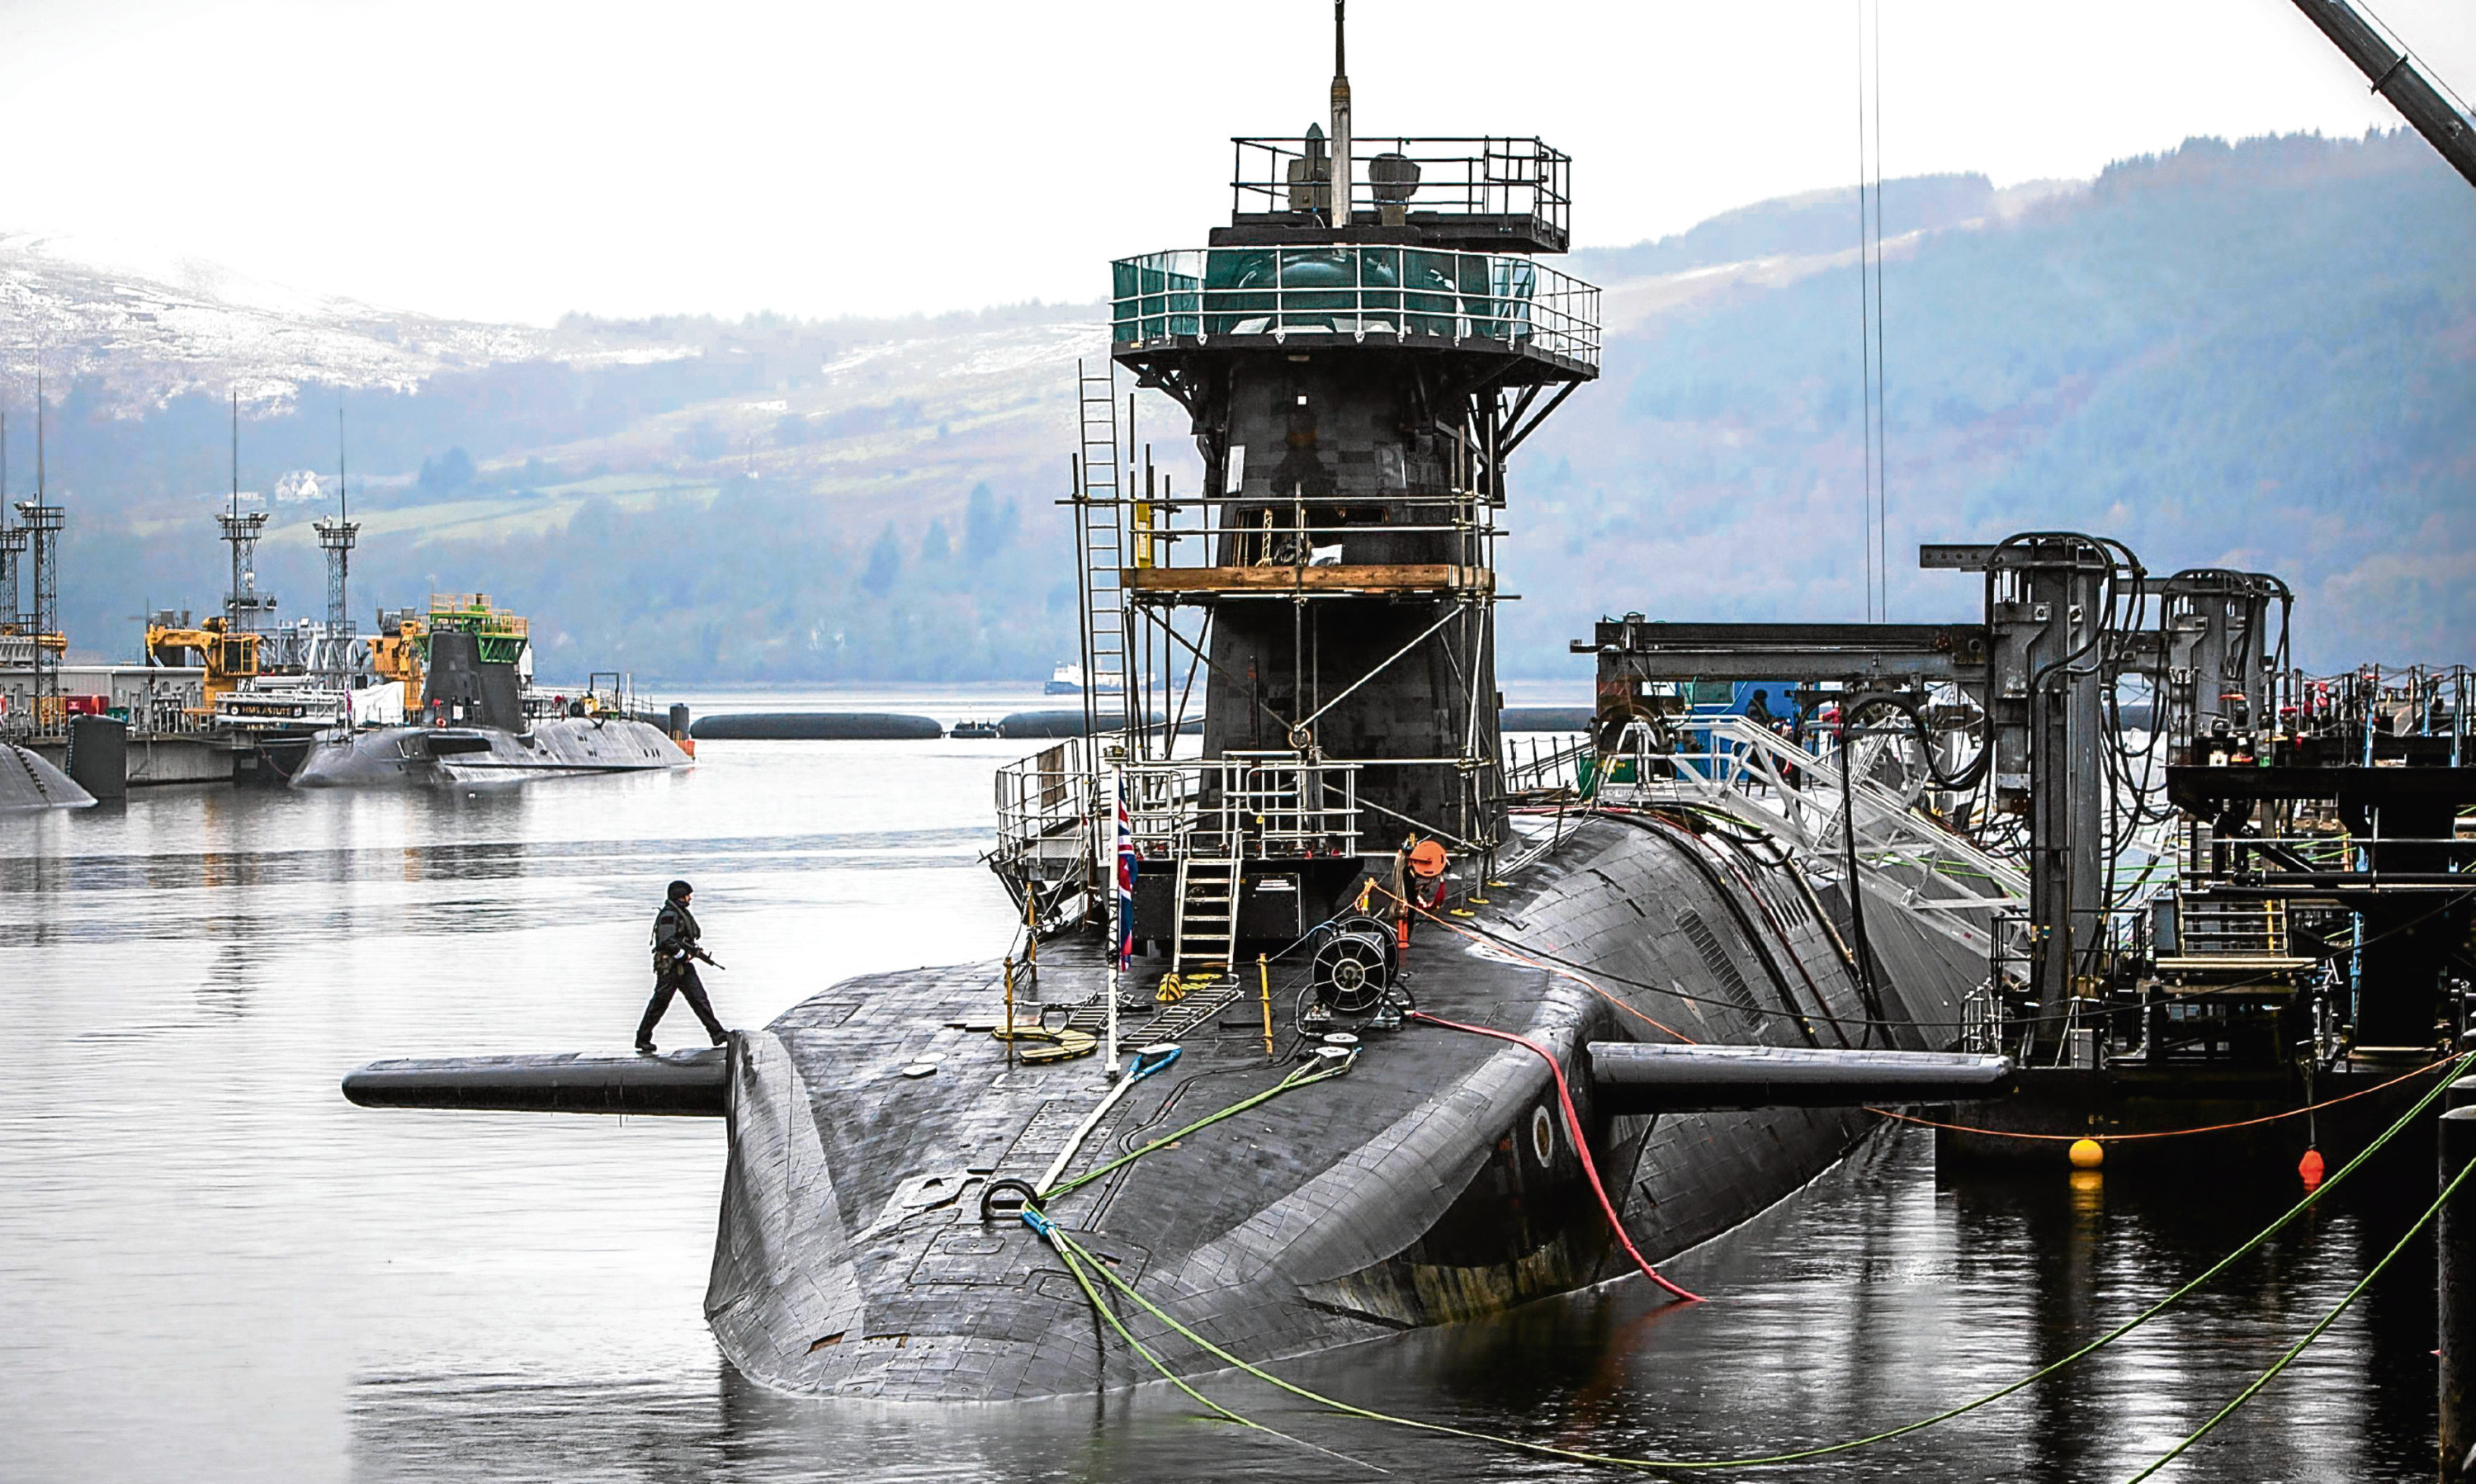 Vanguard-class submarine HMS Vigilant, one of the UK's four nuclear warhead-carrying submarines, at HM Naval Base Clyde, also known as Faslane.